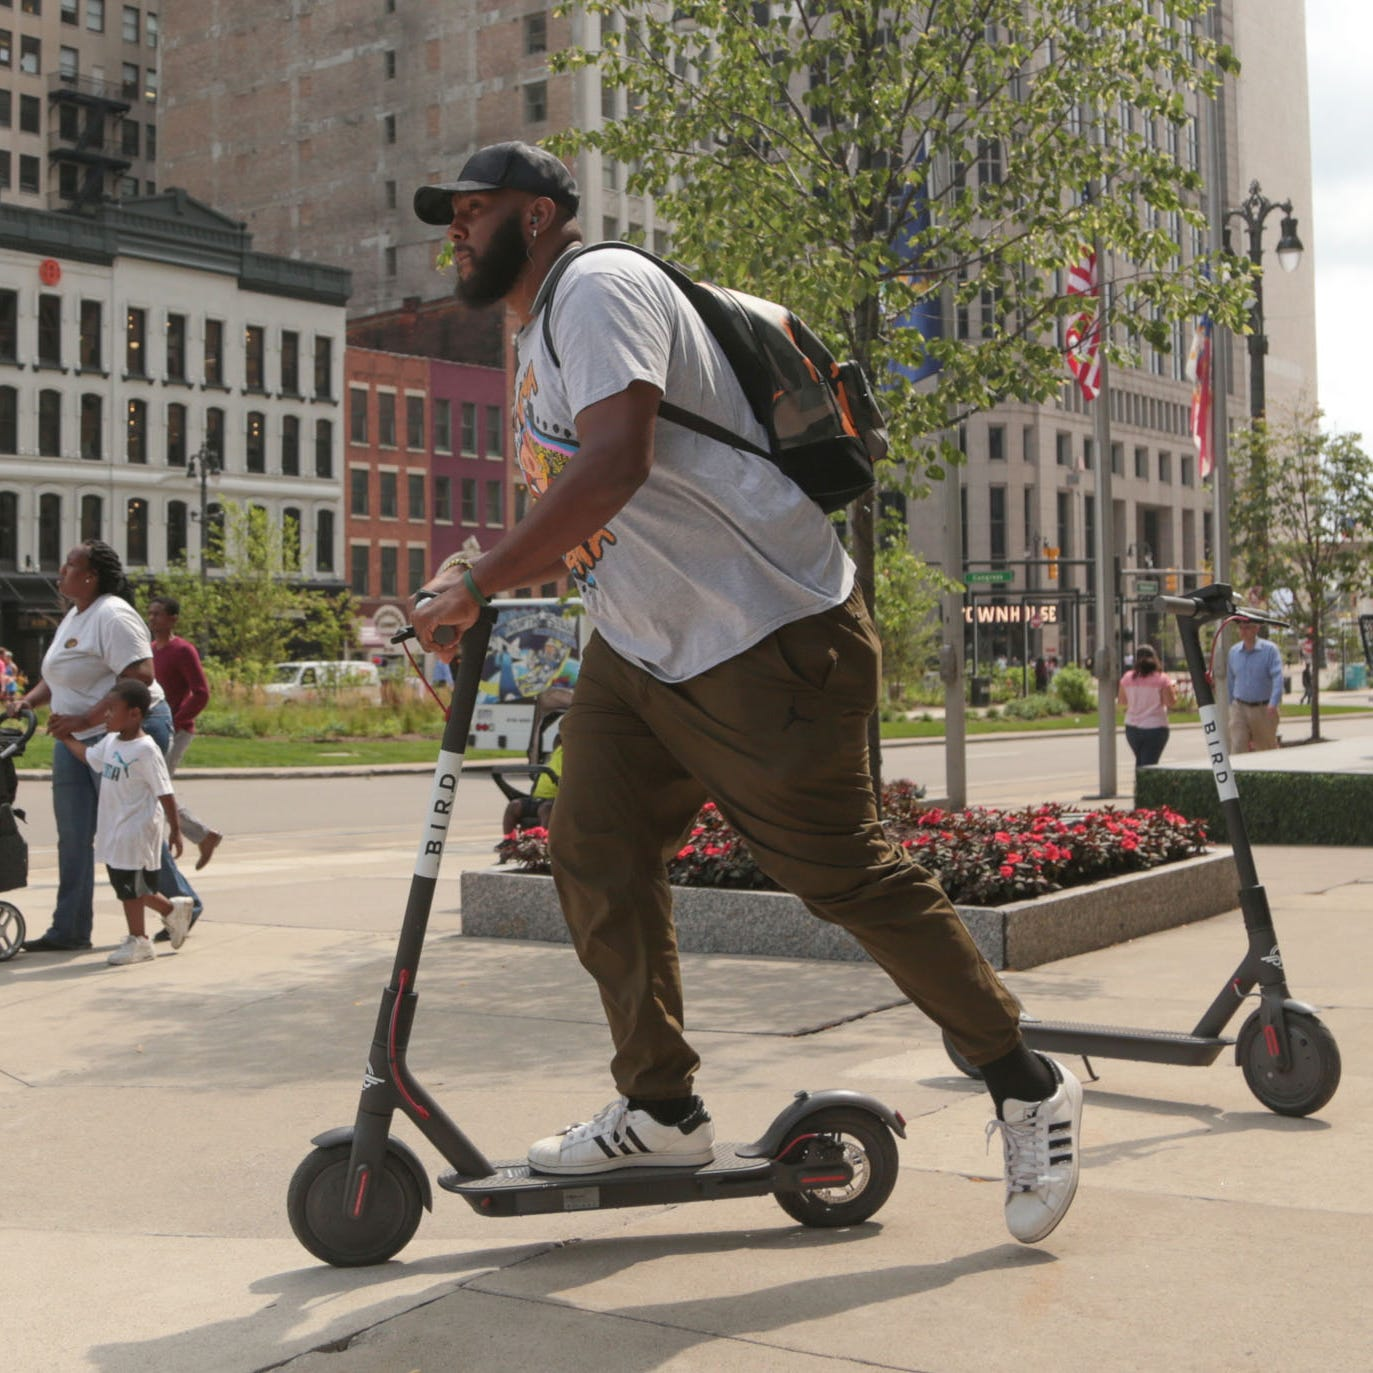 Detroit's Bird, Lime rental scooter craze hits an obstacle